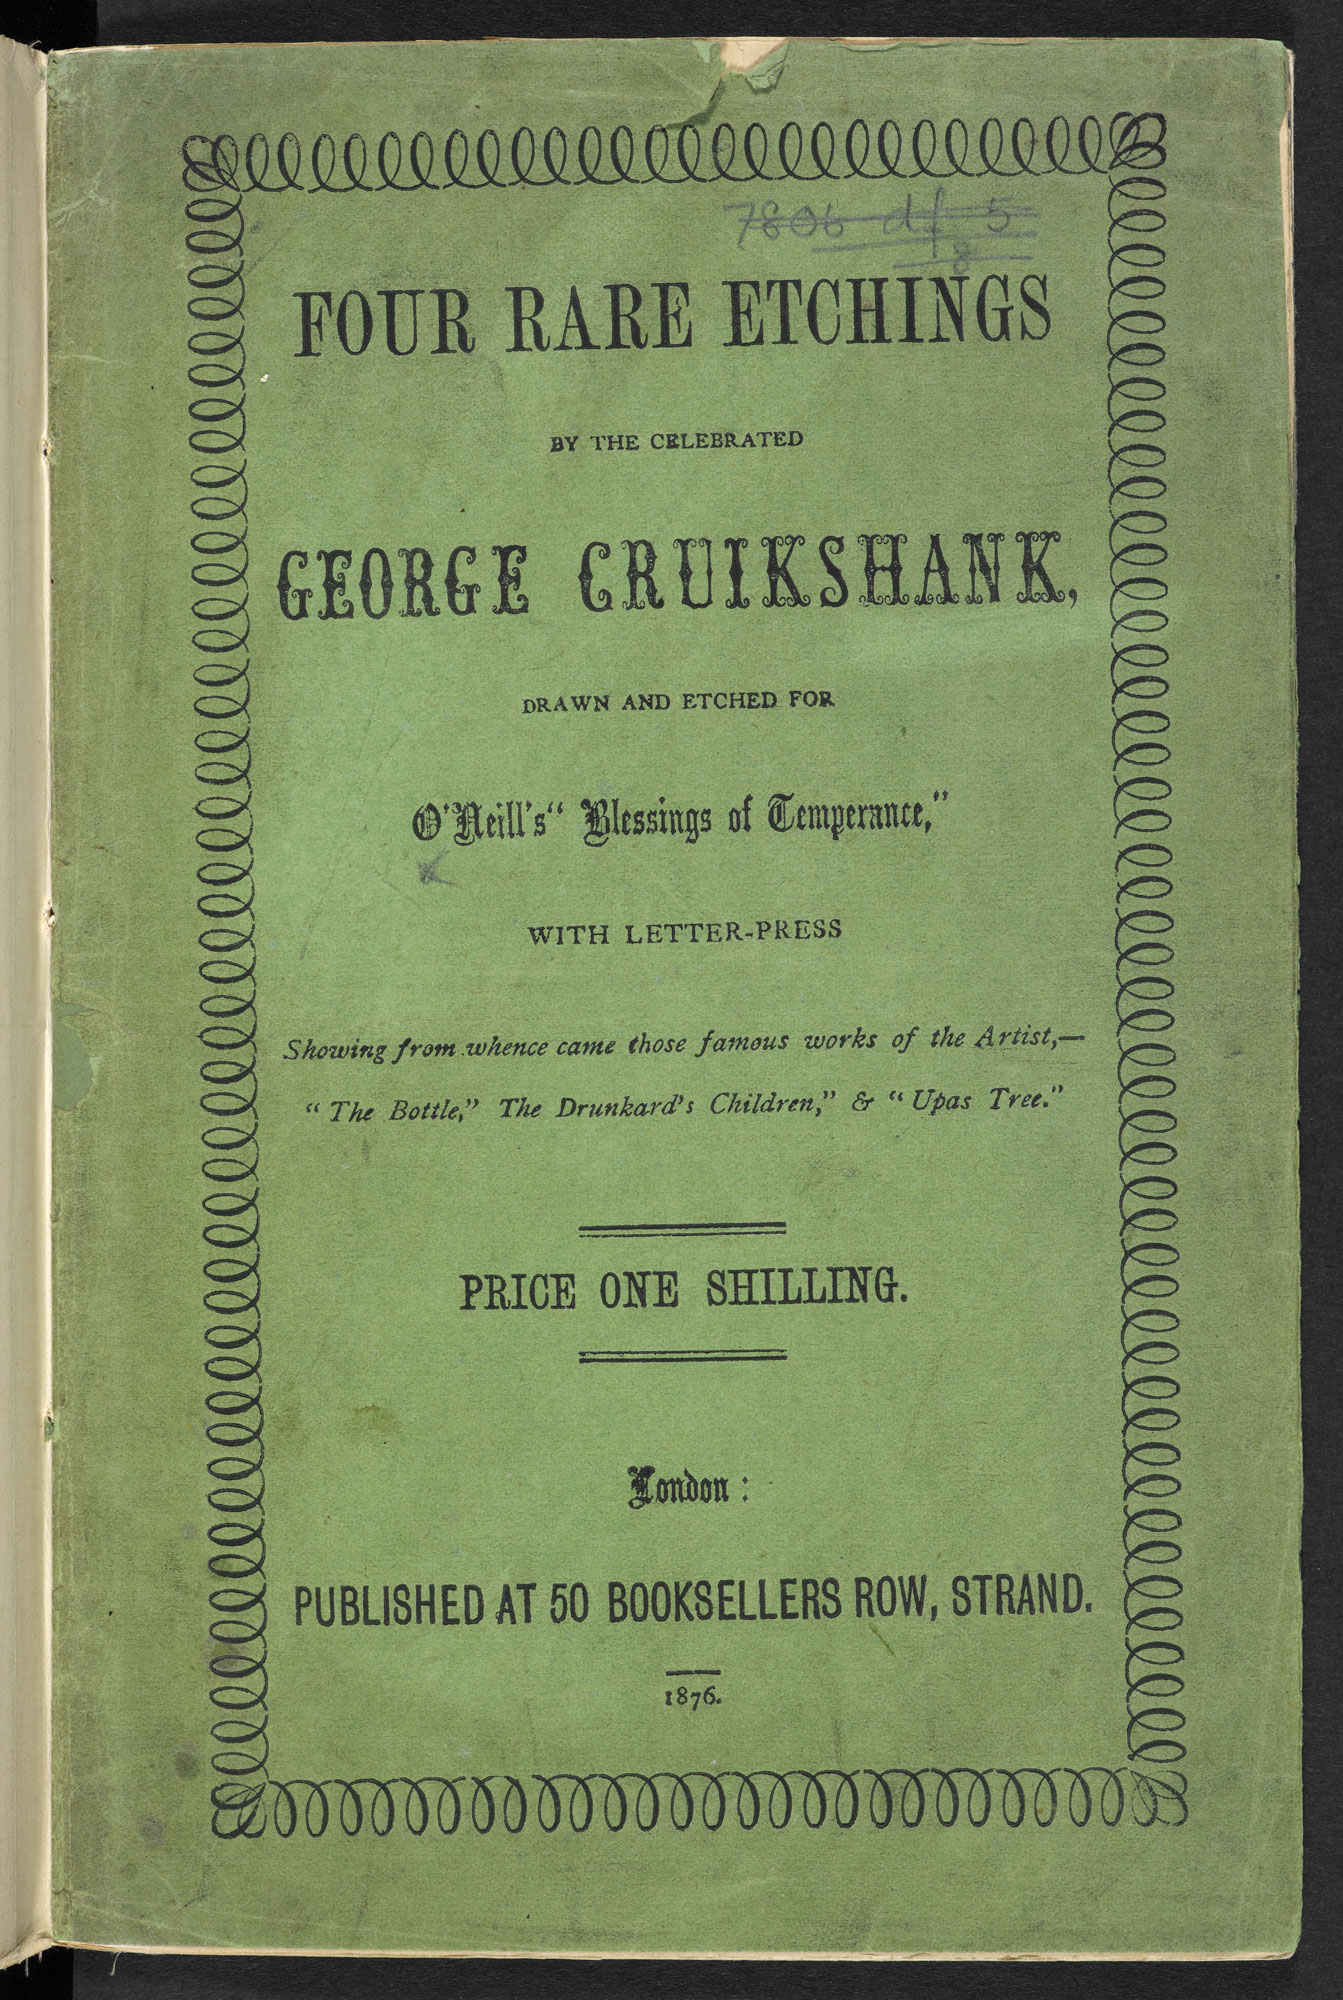 Four illustrations about temperance  by George Cruikshank [page: front cover]